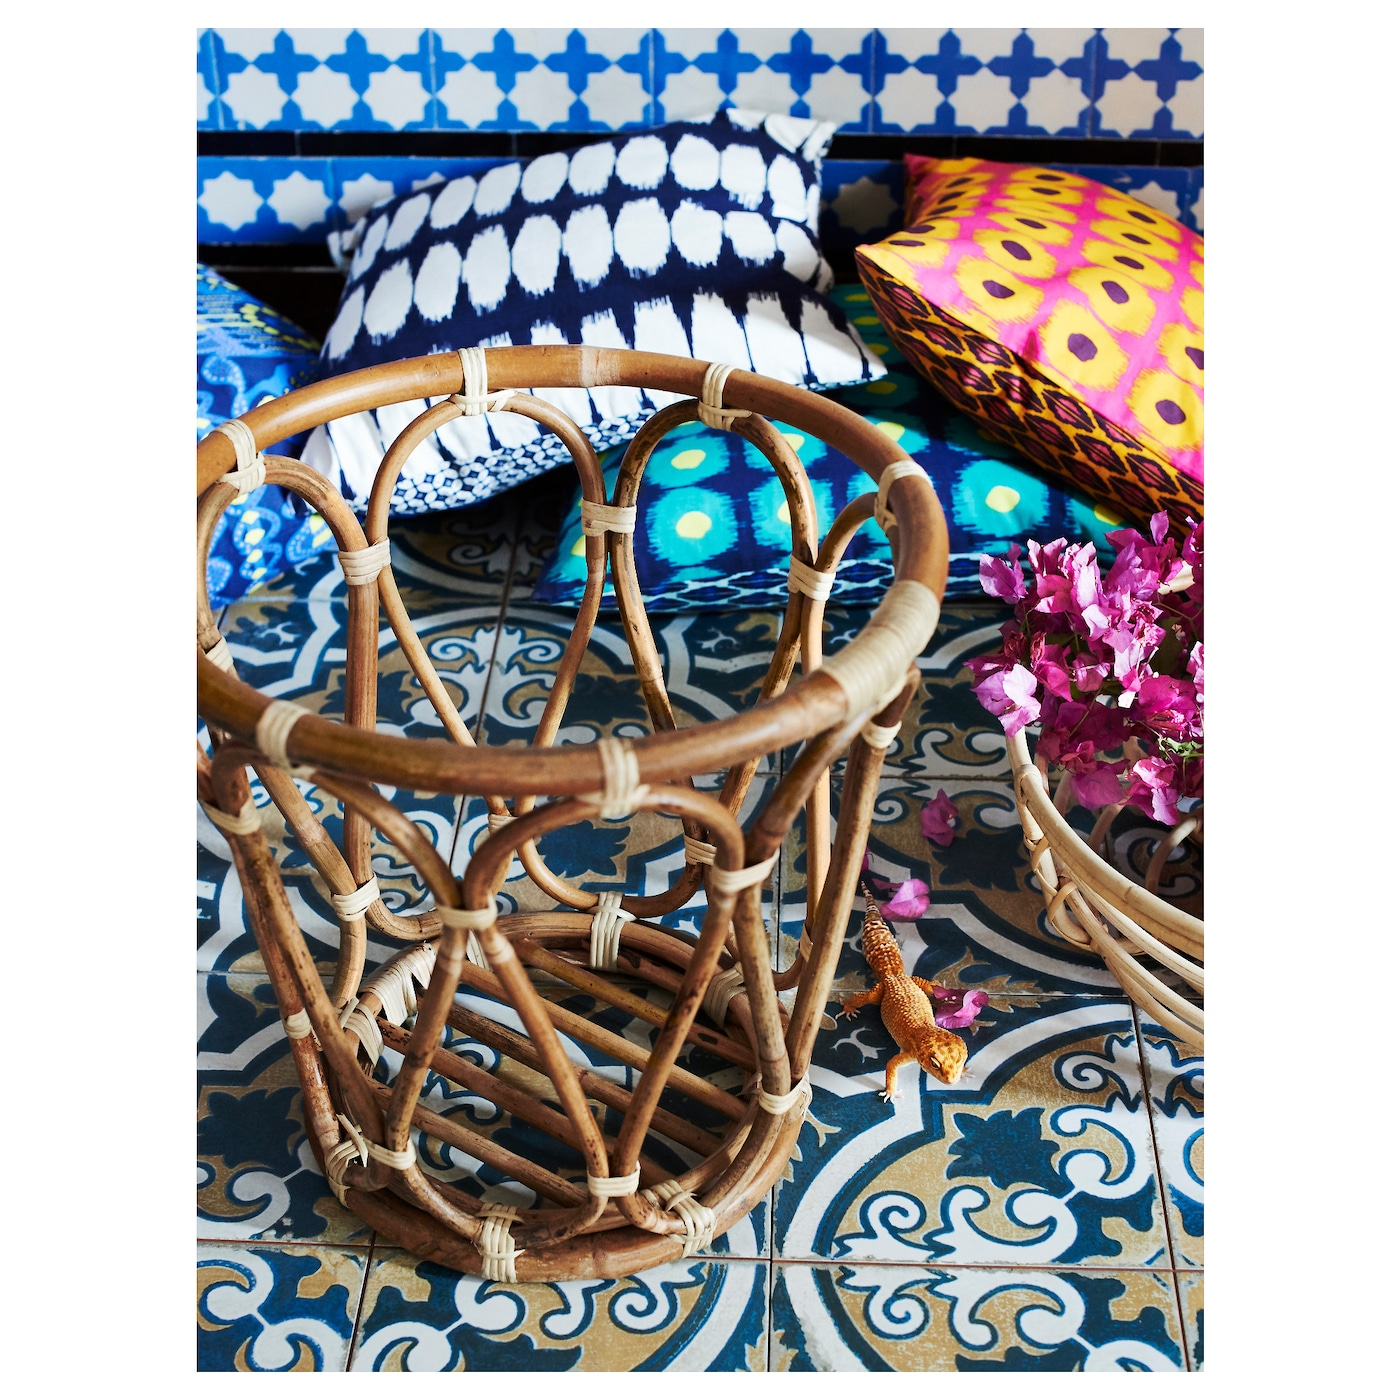 IKEA JASSA basket Handmade by skilled craftspeople, which makes every product unique.